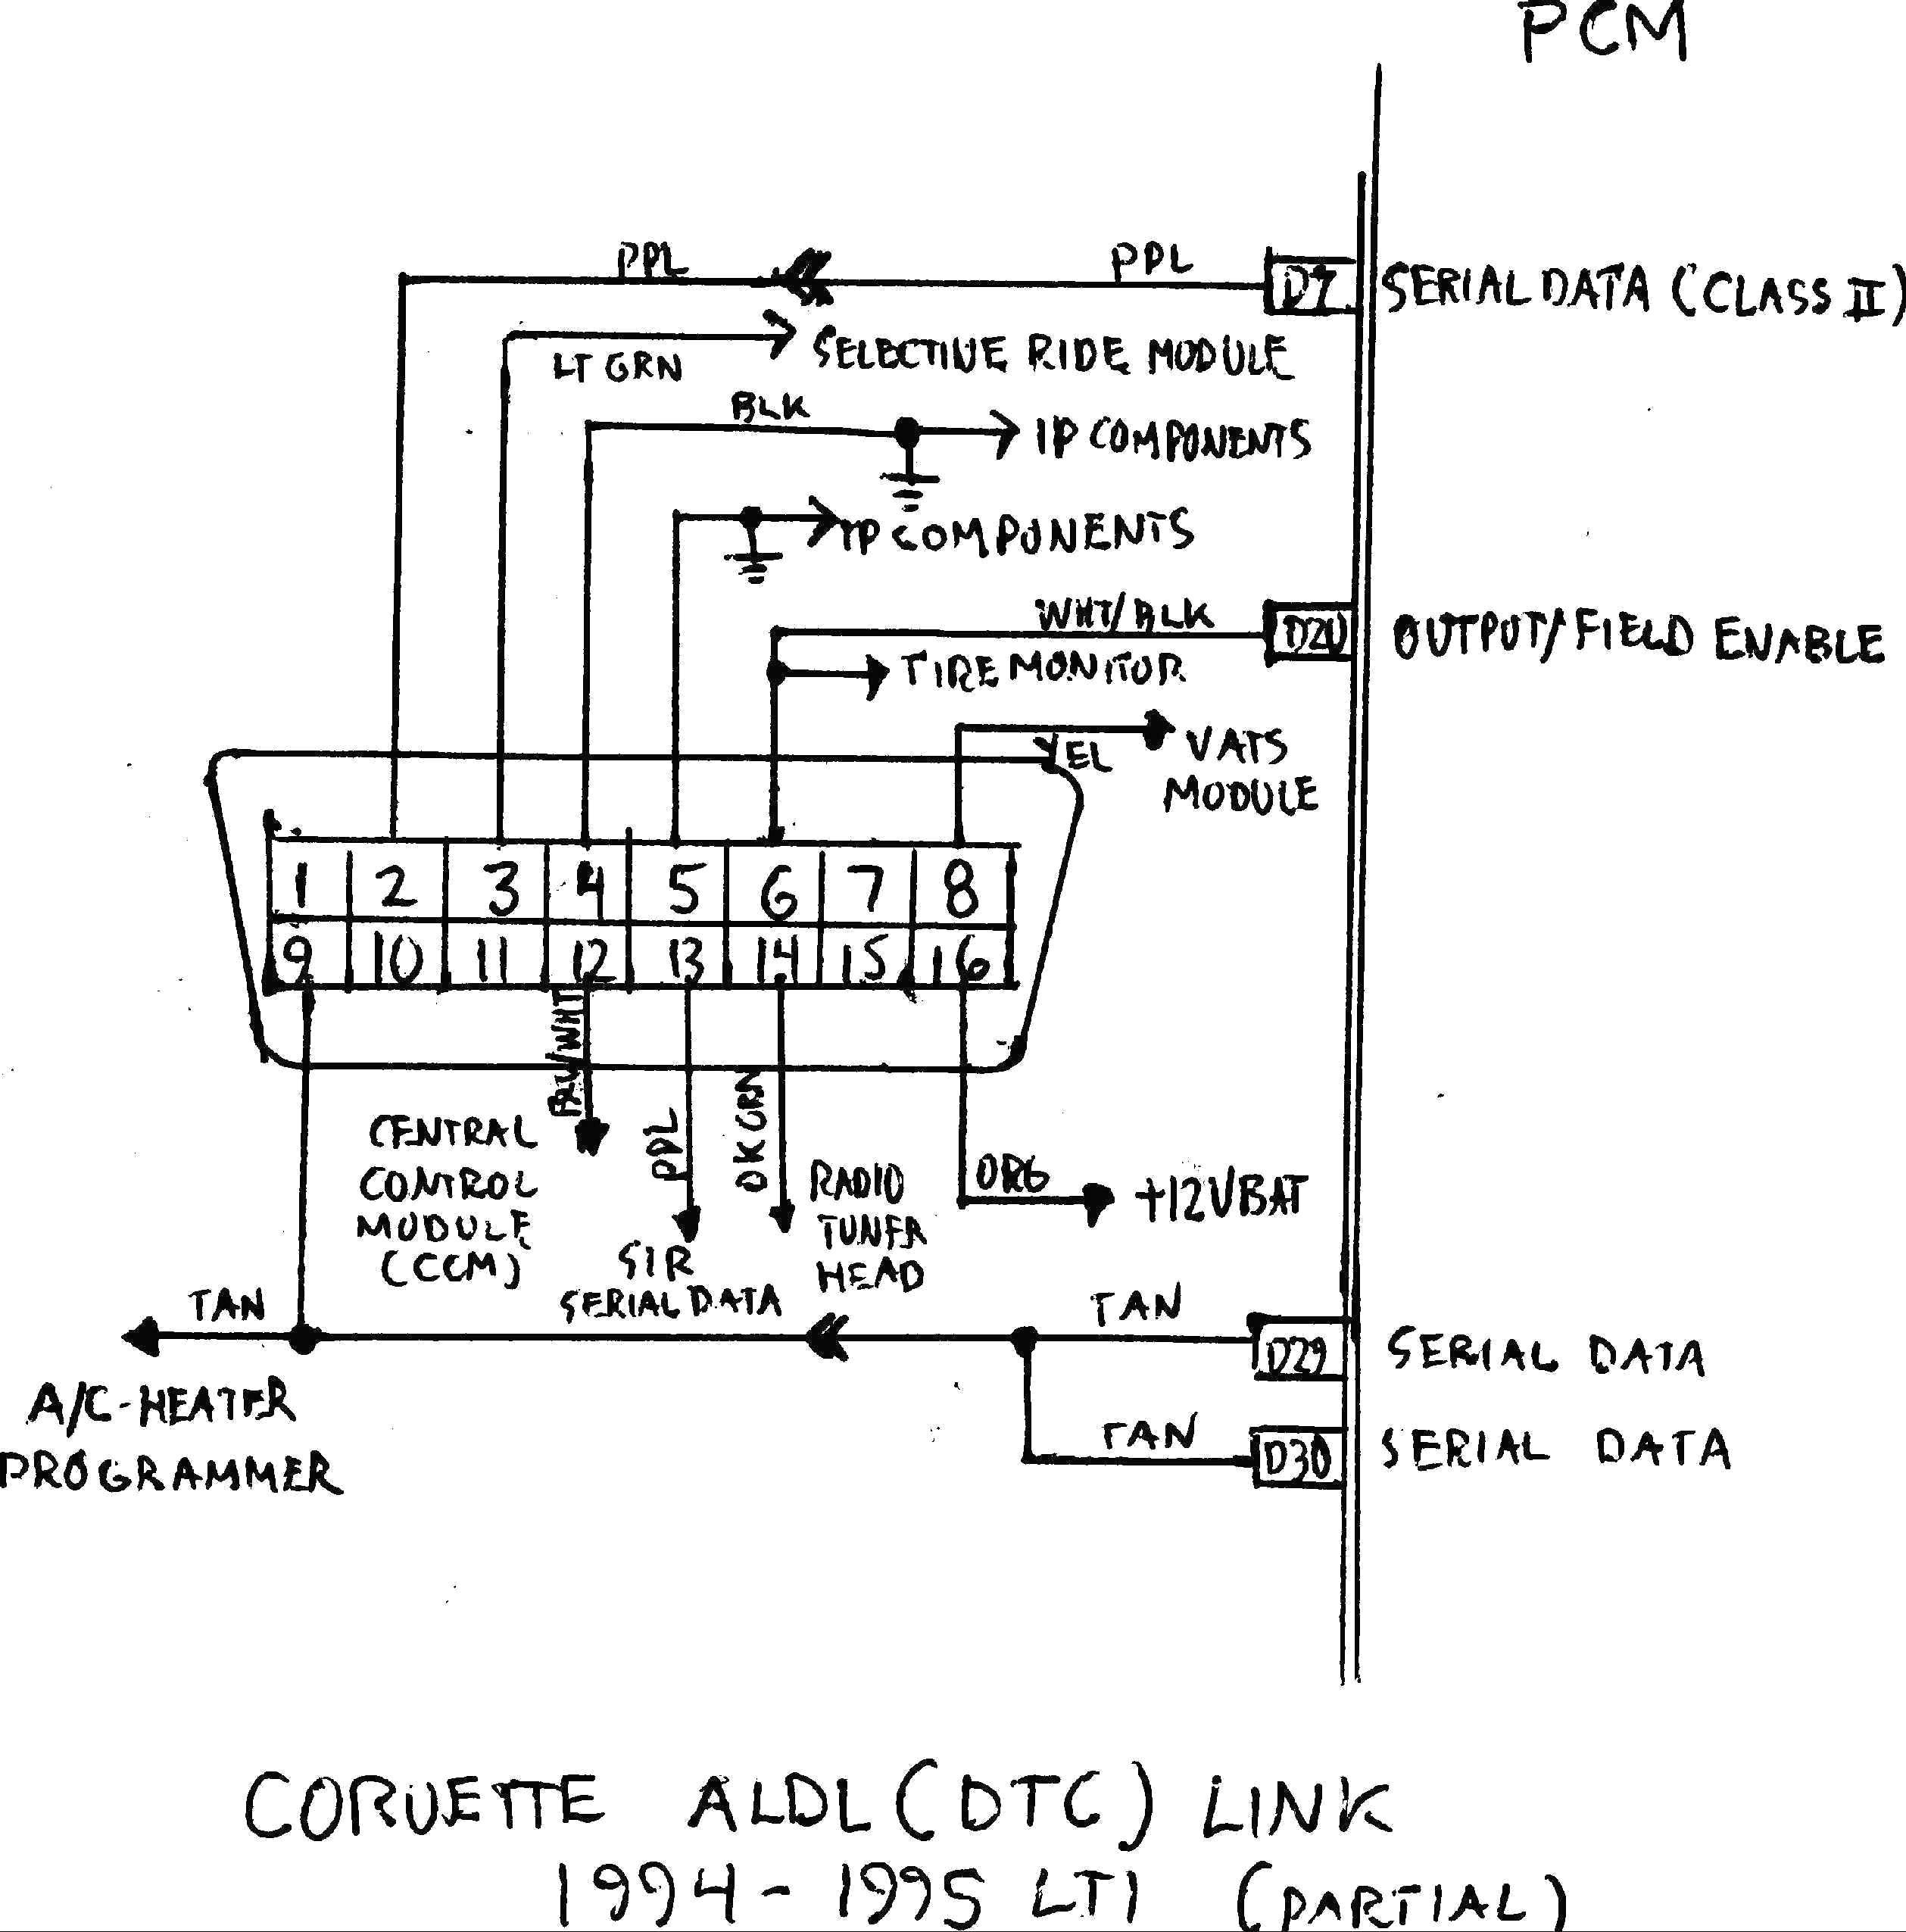 Obd2 To Usb Cable Wiring Diagram | Wiring Diagram - Obd2 To Usb Wiring Diagram